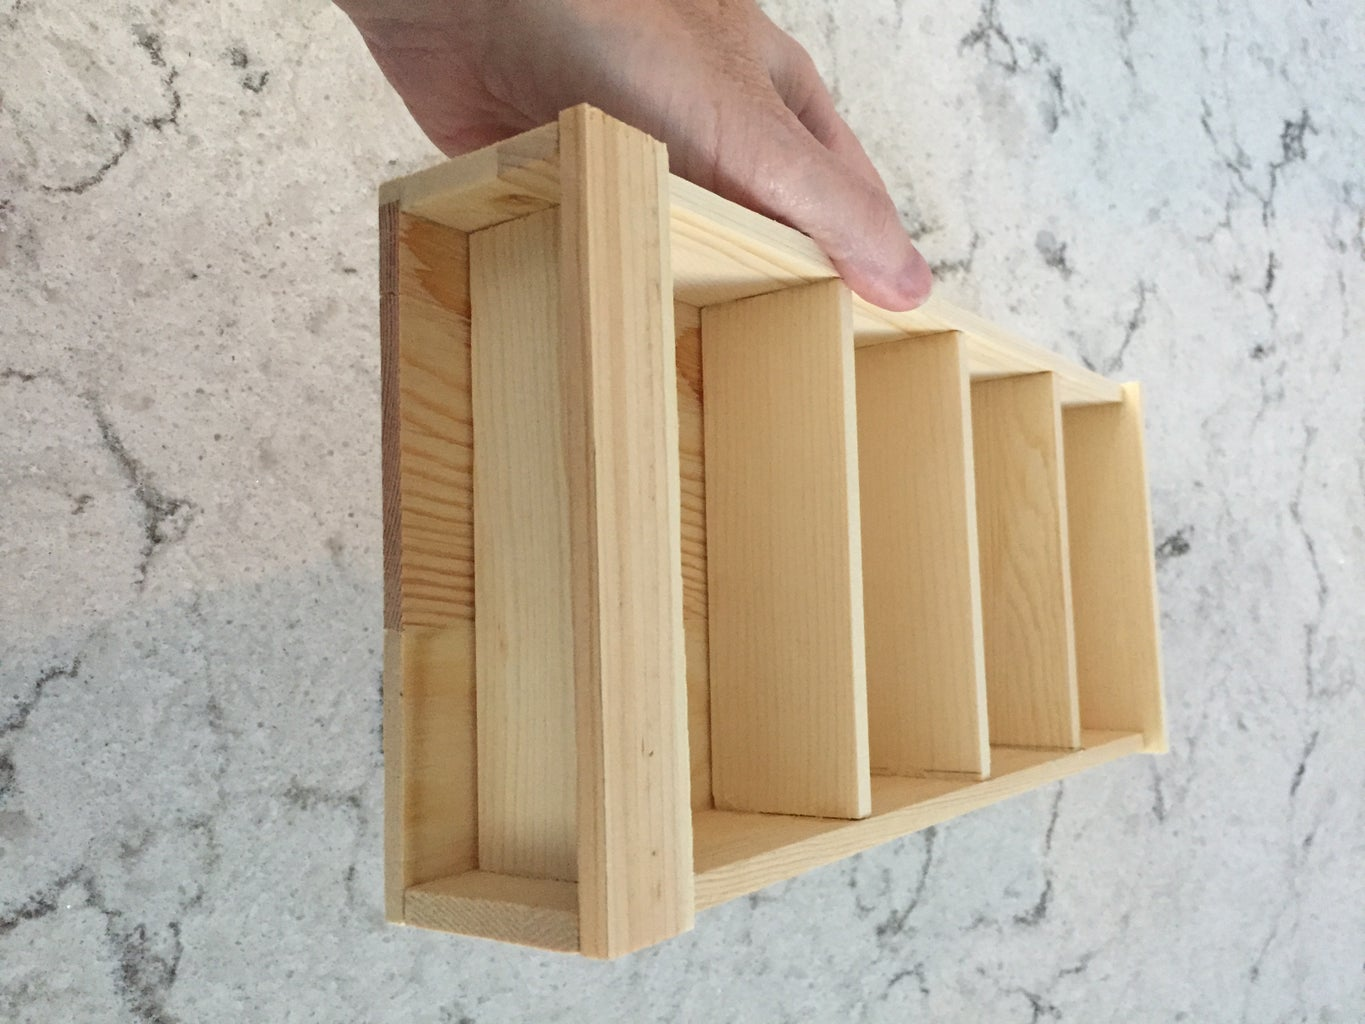 Step 3: Build Your Bookcase